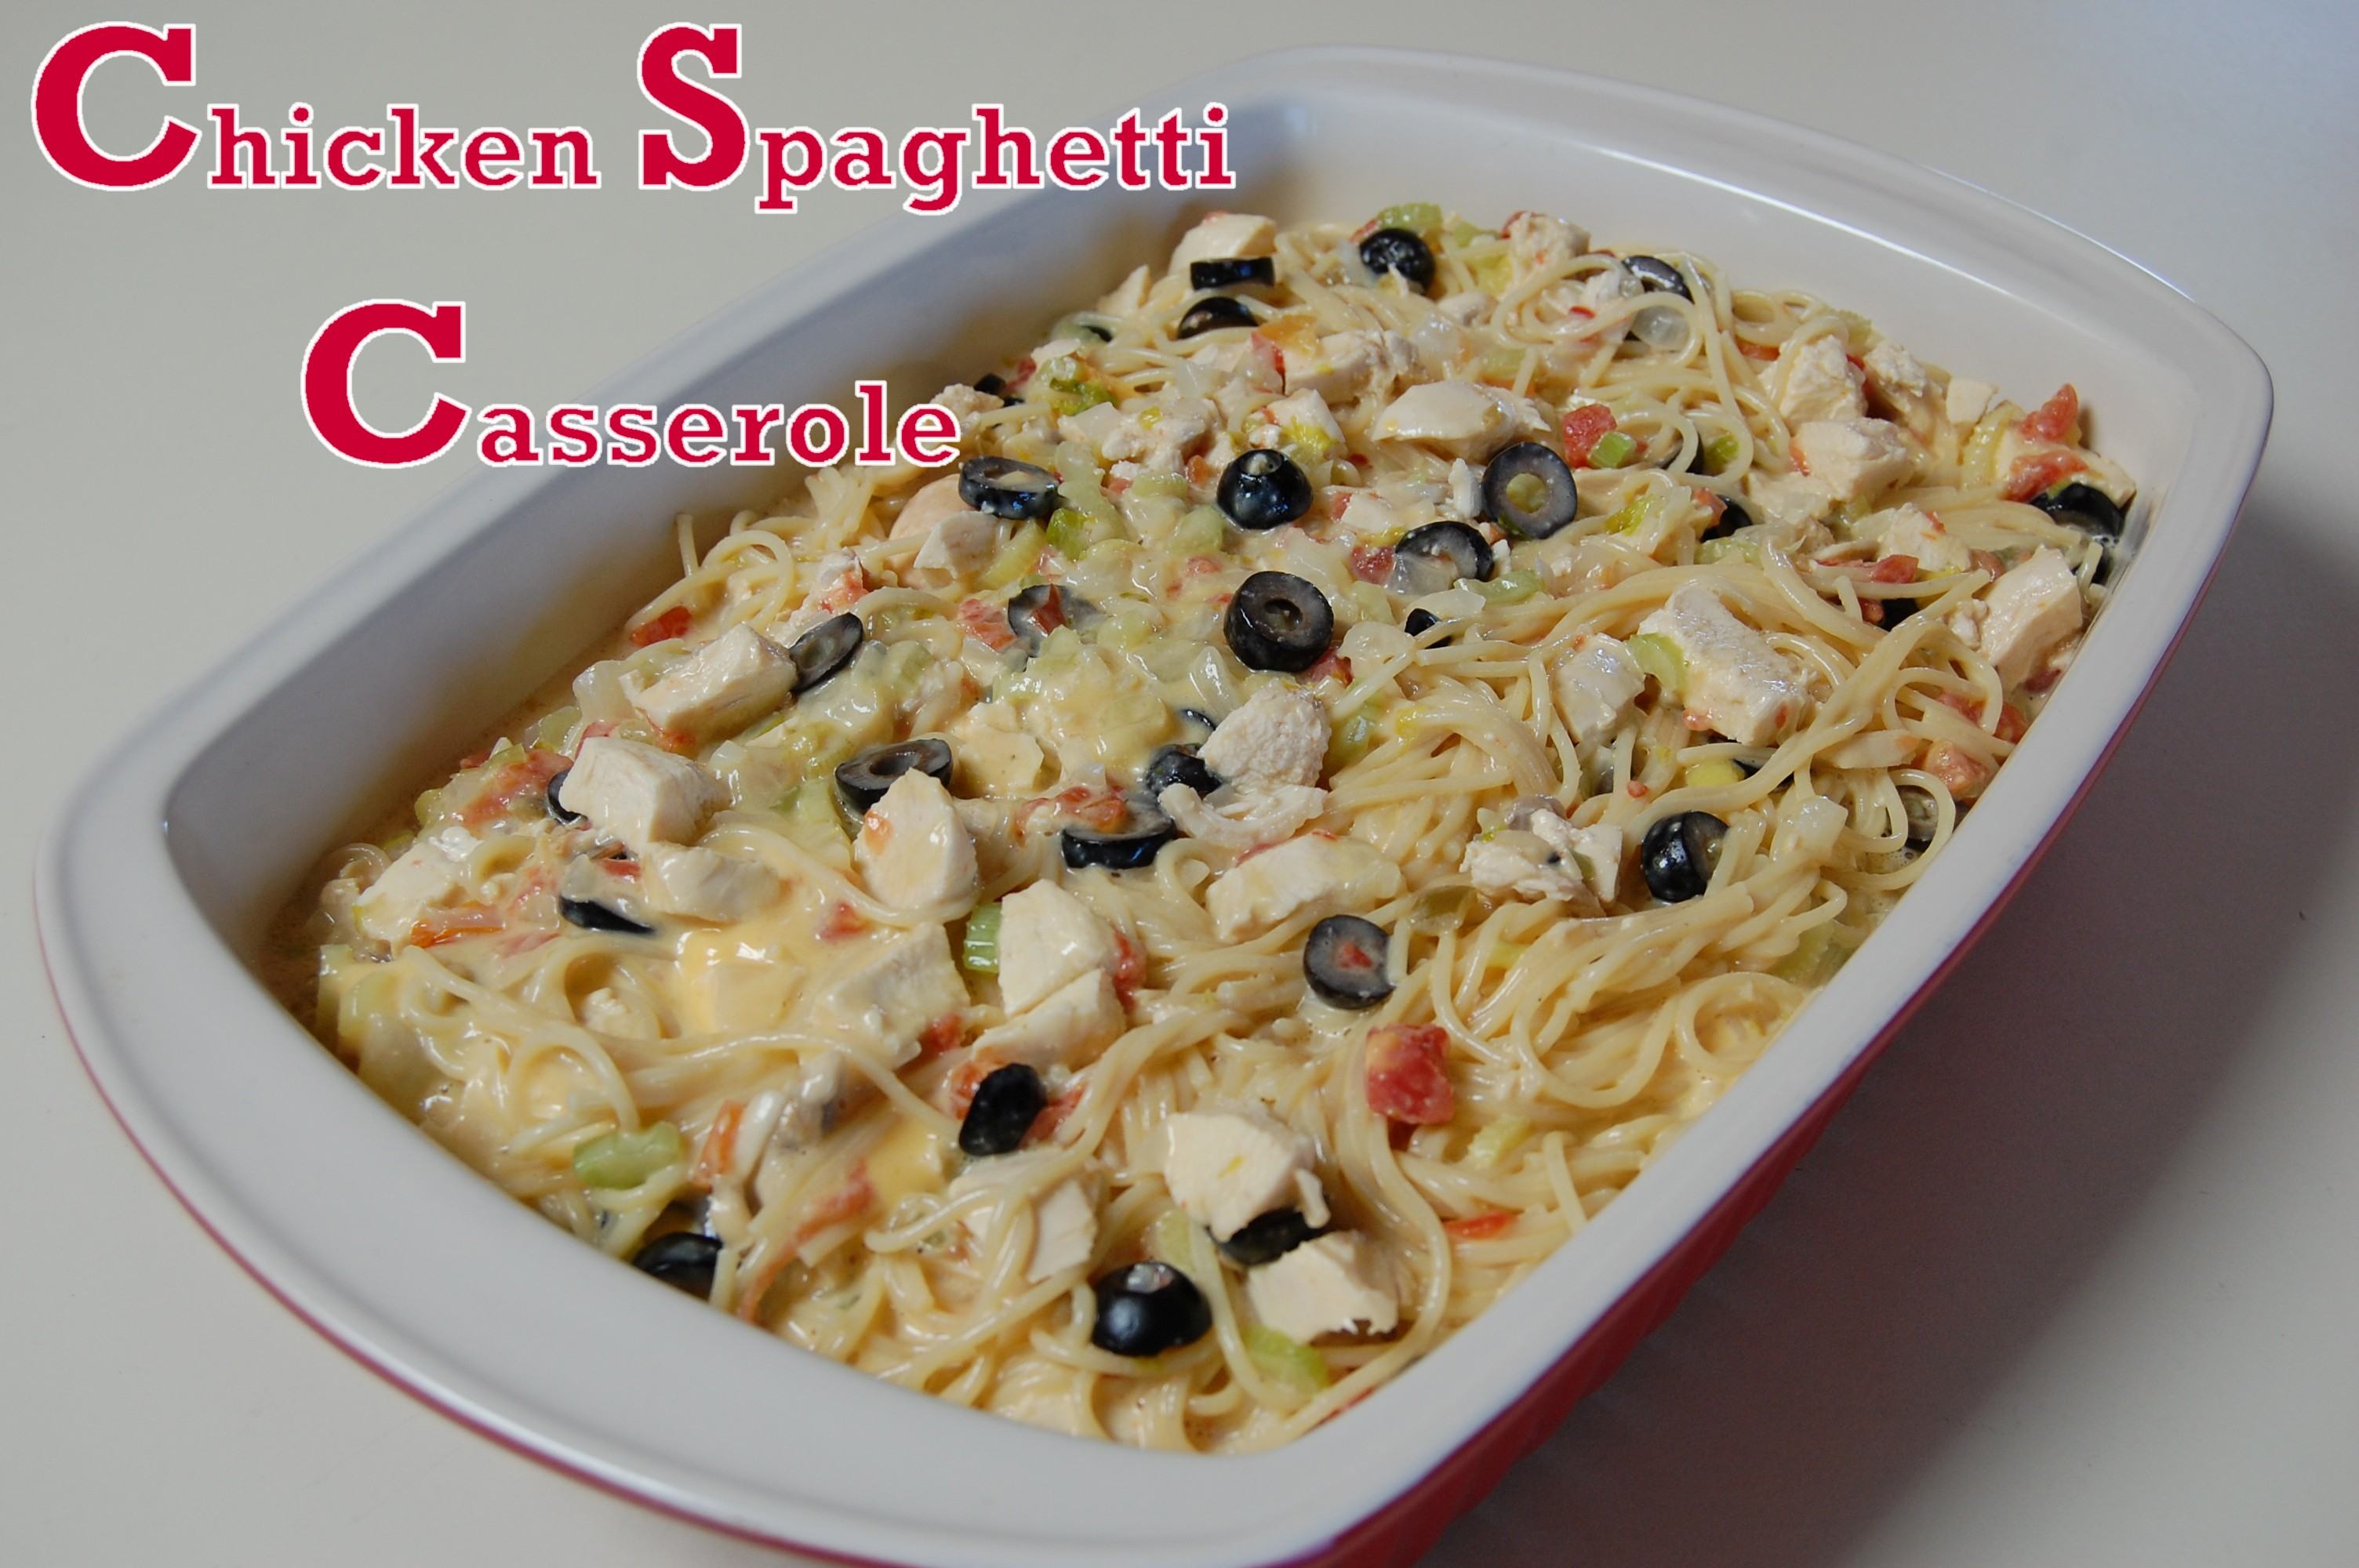 Chicken Spaghetti Casserole Recipes — Dishmaps